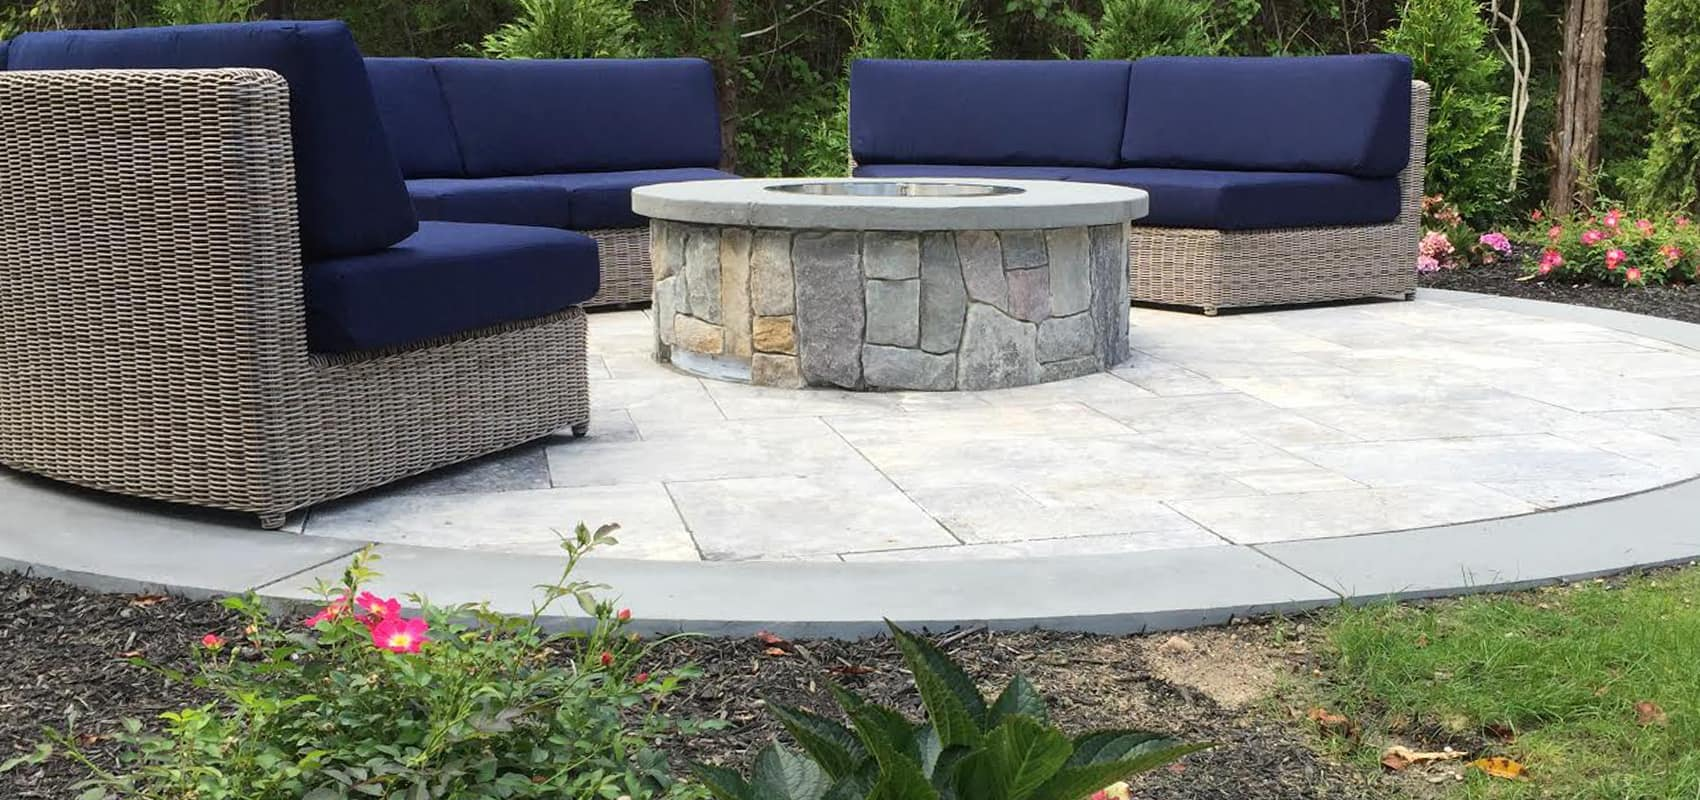 Fire Pits   Stone and Regular Kits   Gas Wood Powered ...